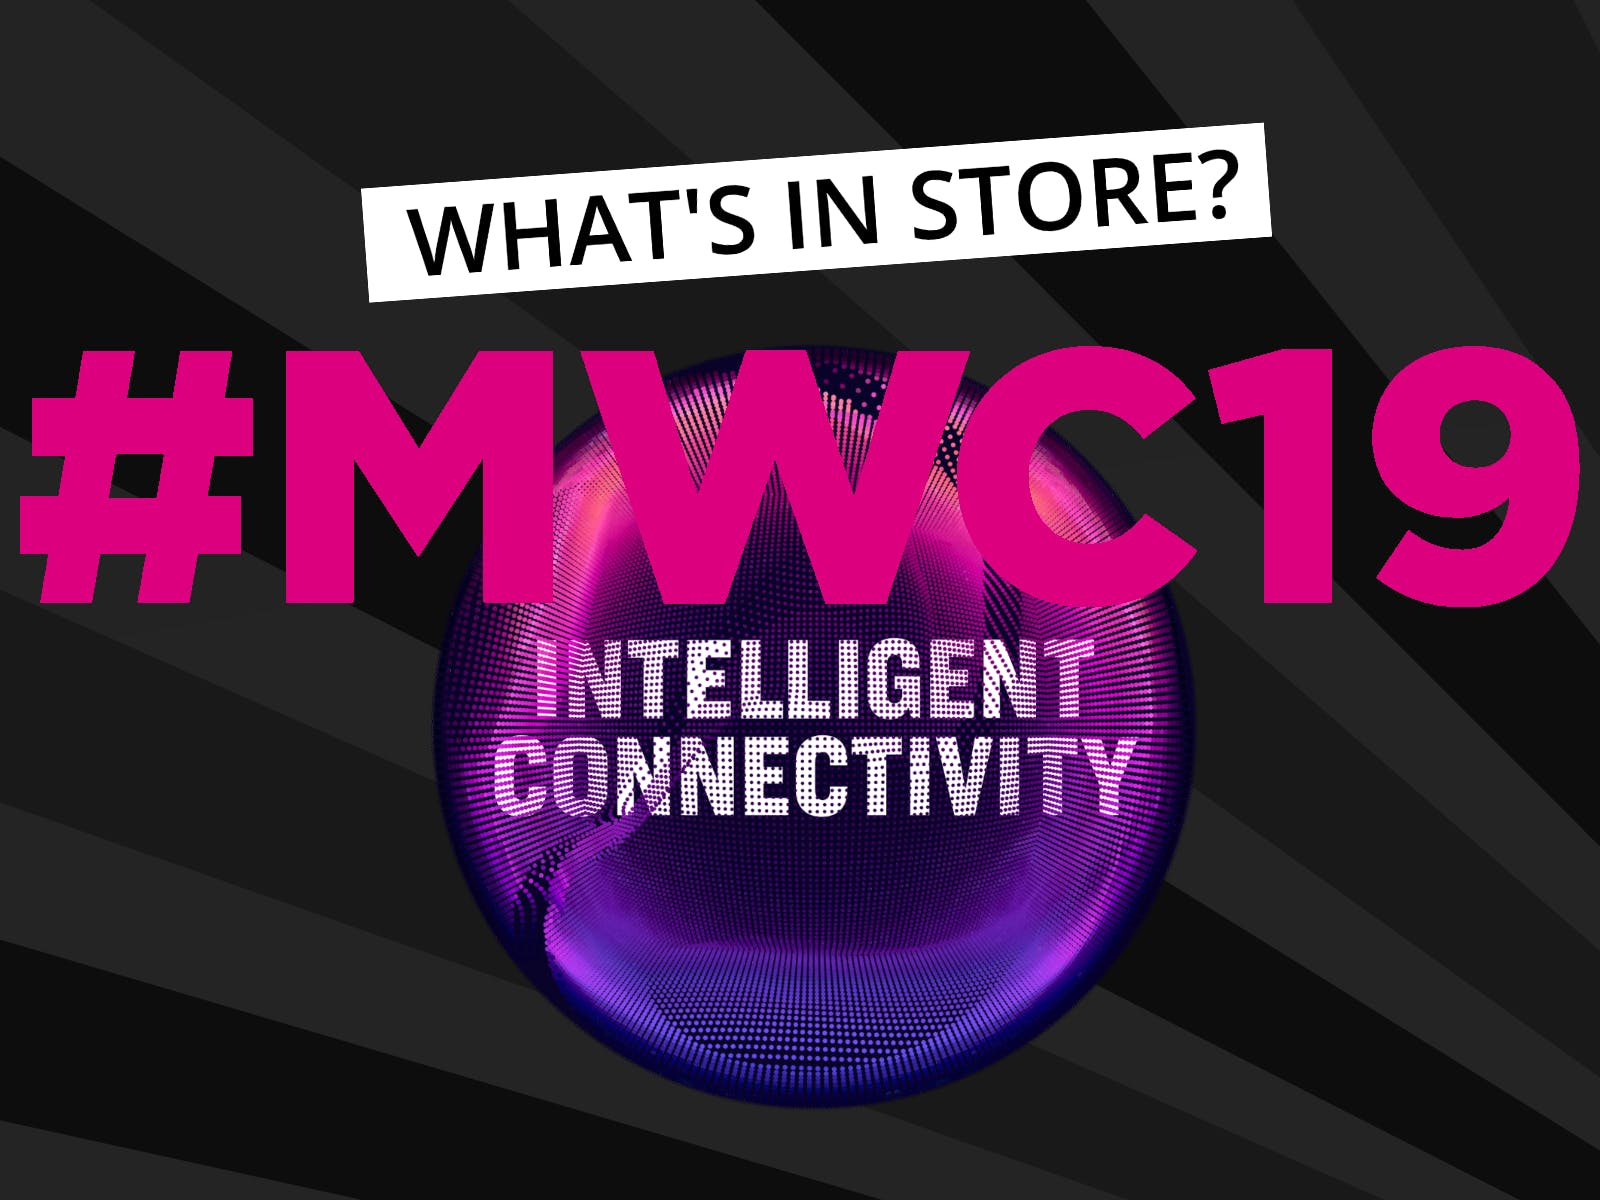 Mobile World Congress 2019: What's In Store?